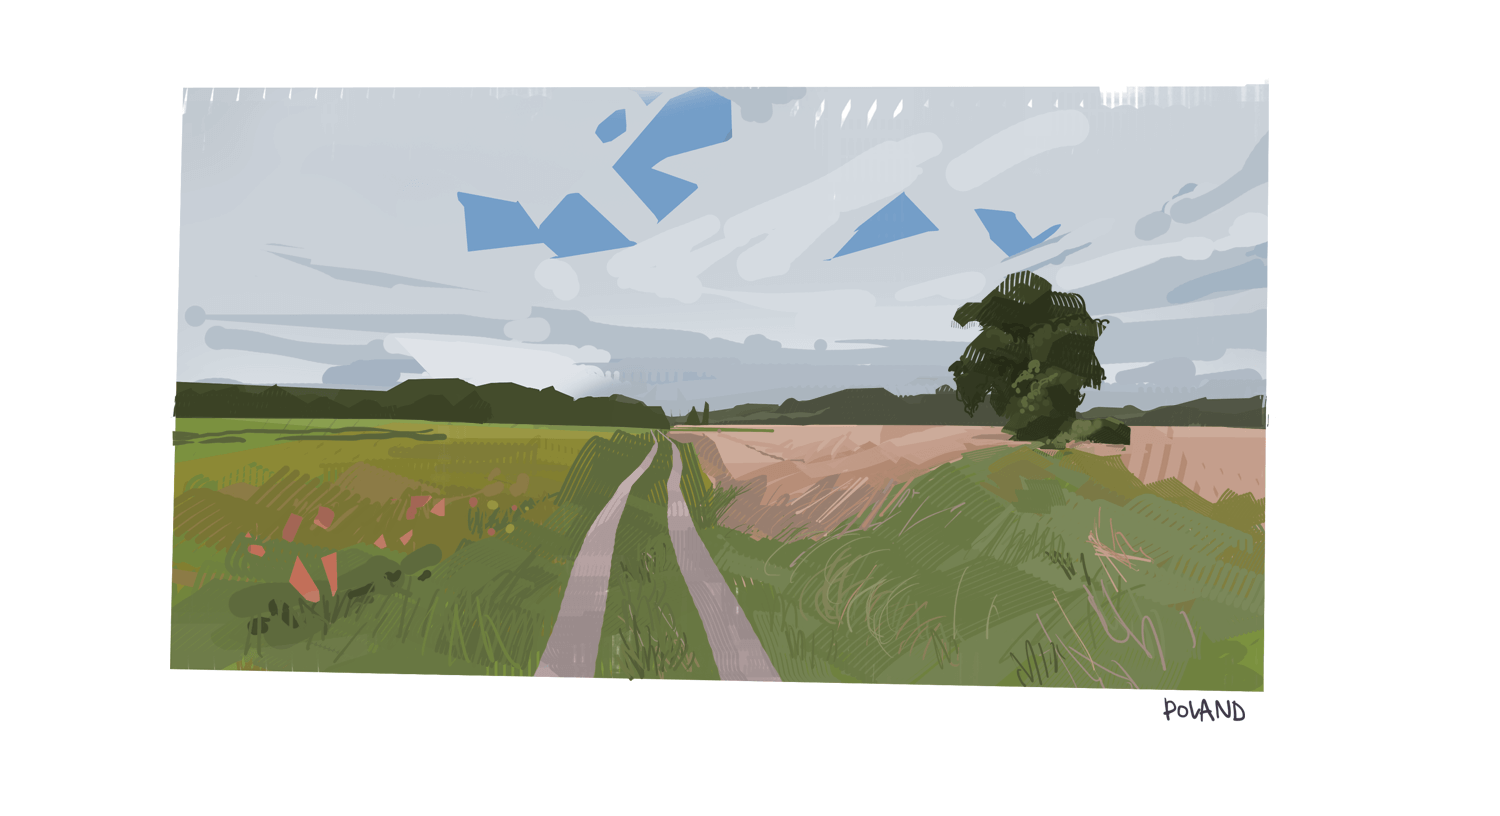 Virtual plein air - Poland